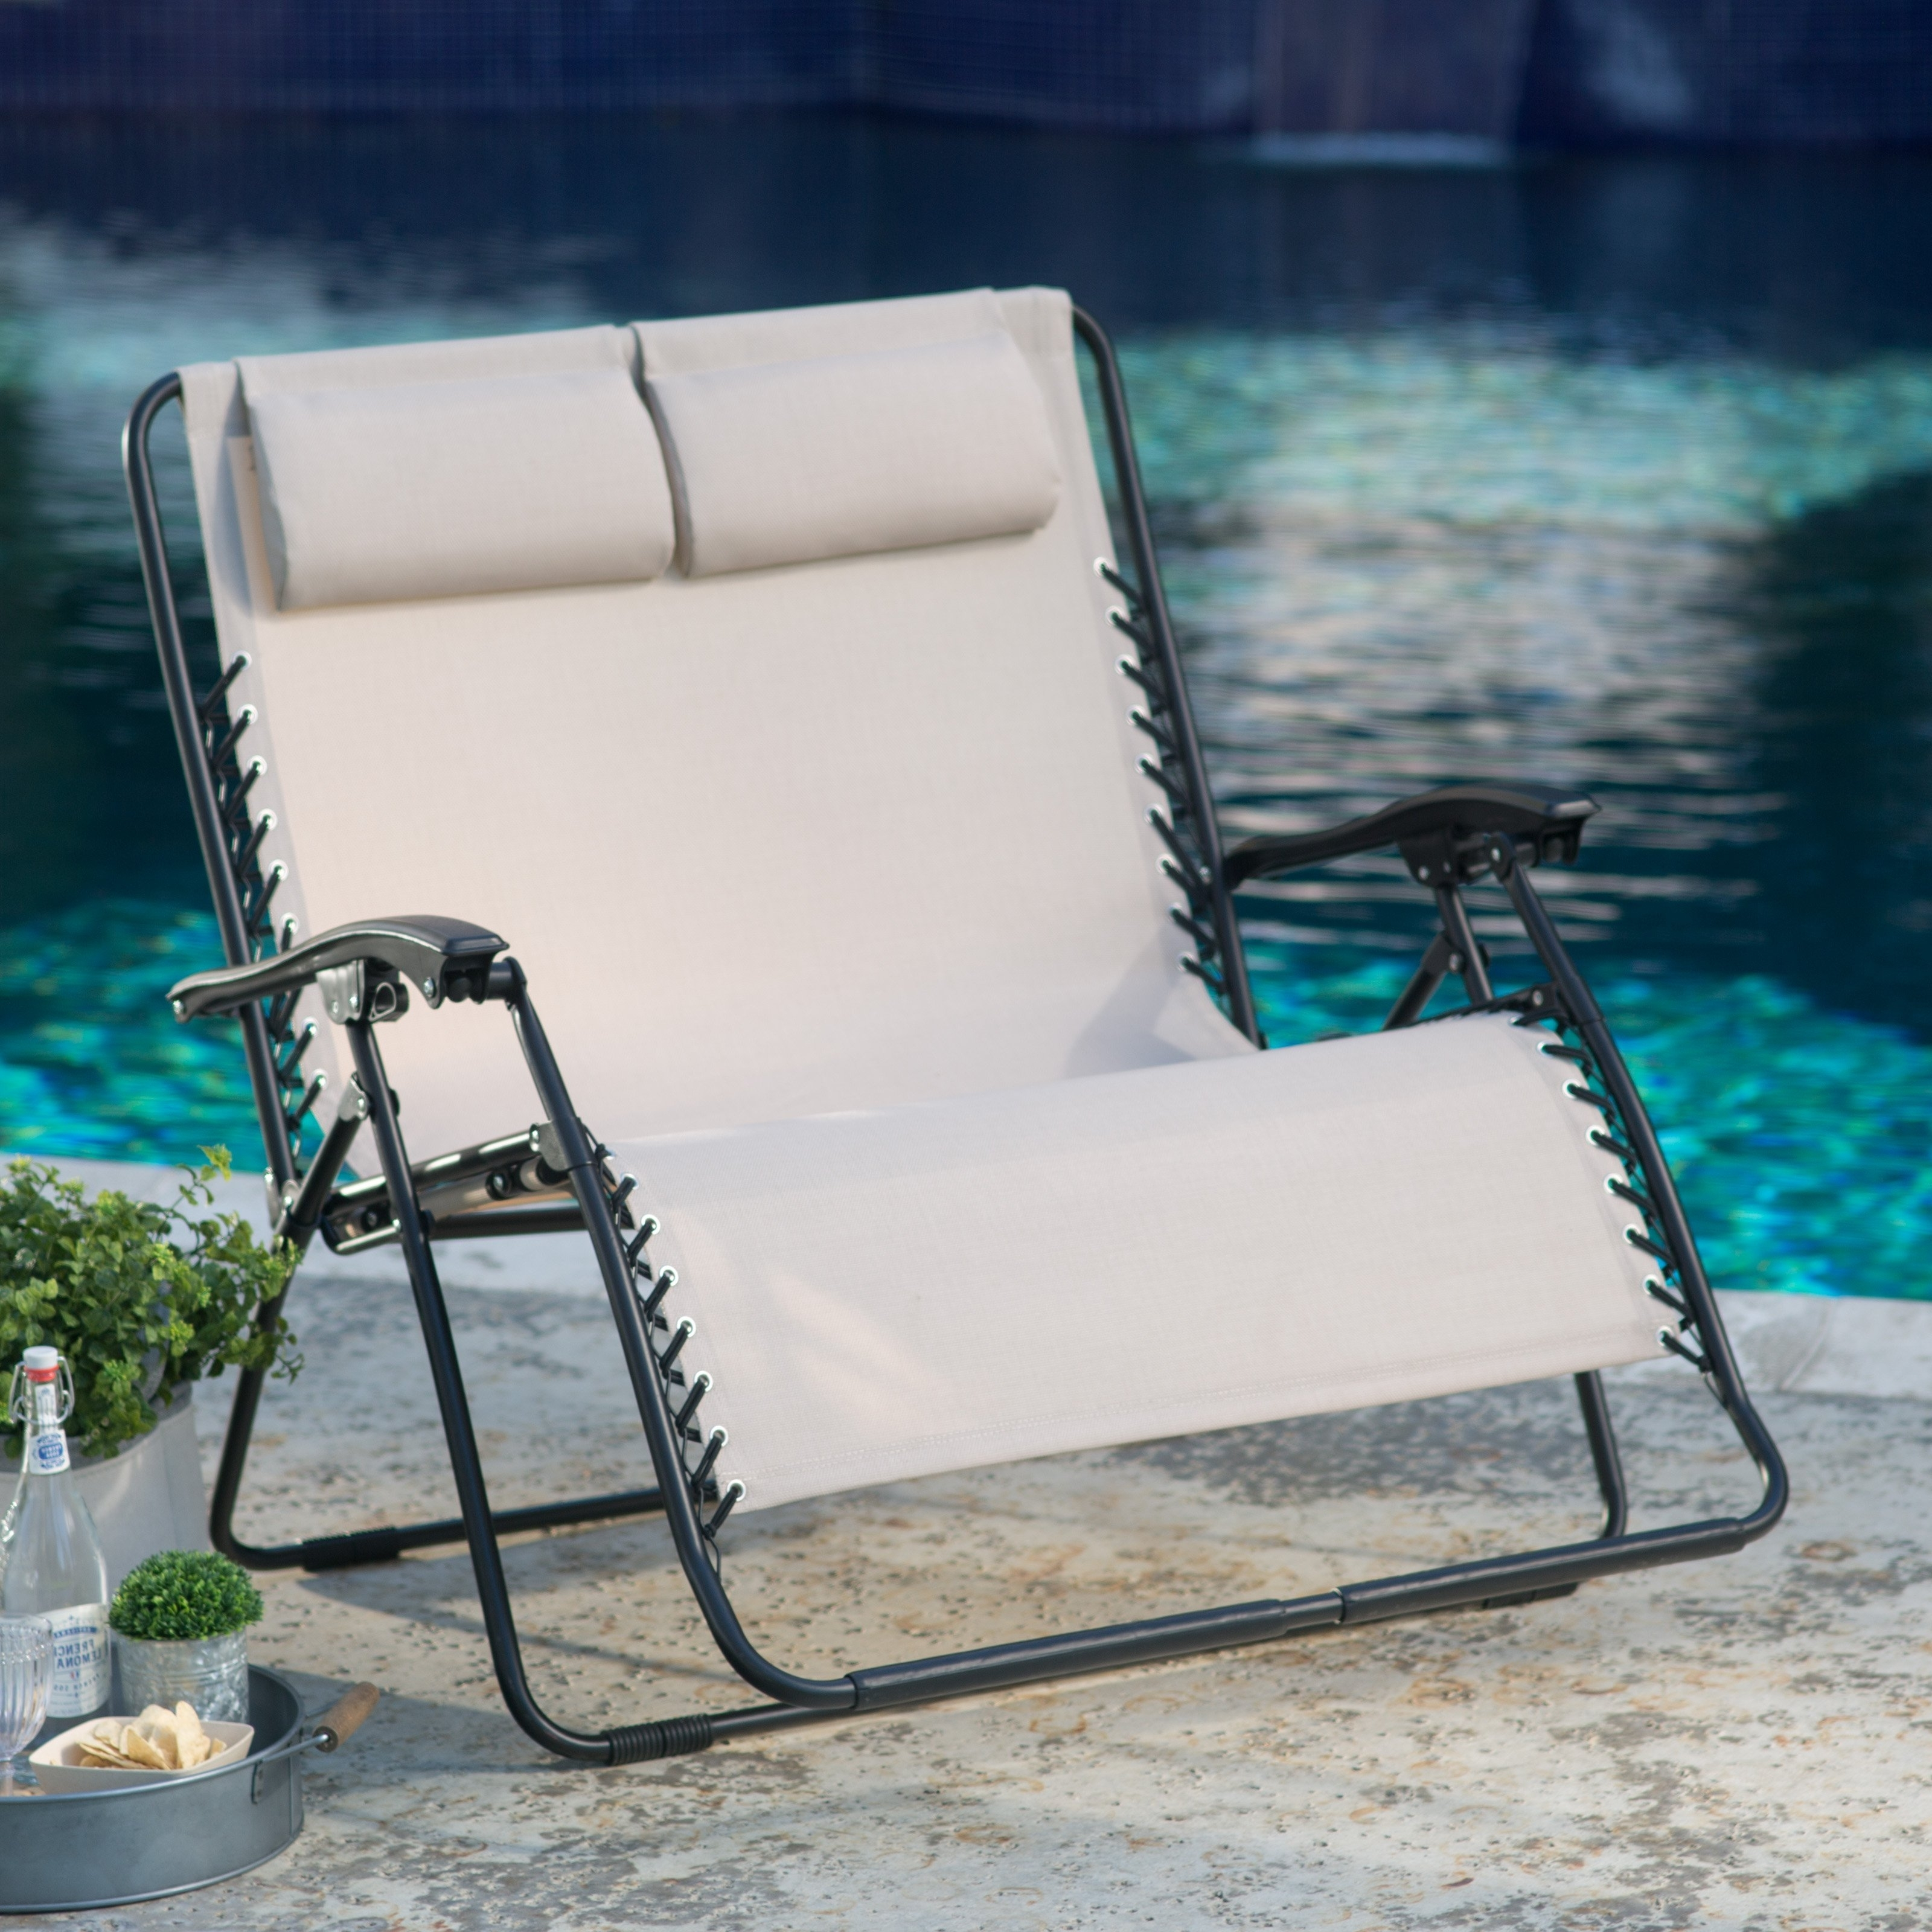 Chaise Lounge Chairs At Kohls Within 2018 Chair : Xl Anti Gravity Chair Kohls Amazing Oversized Antigravity (View 12 of 15)